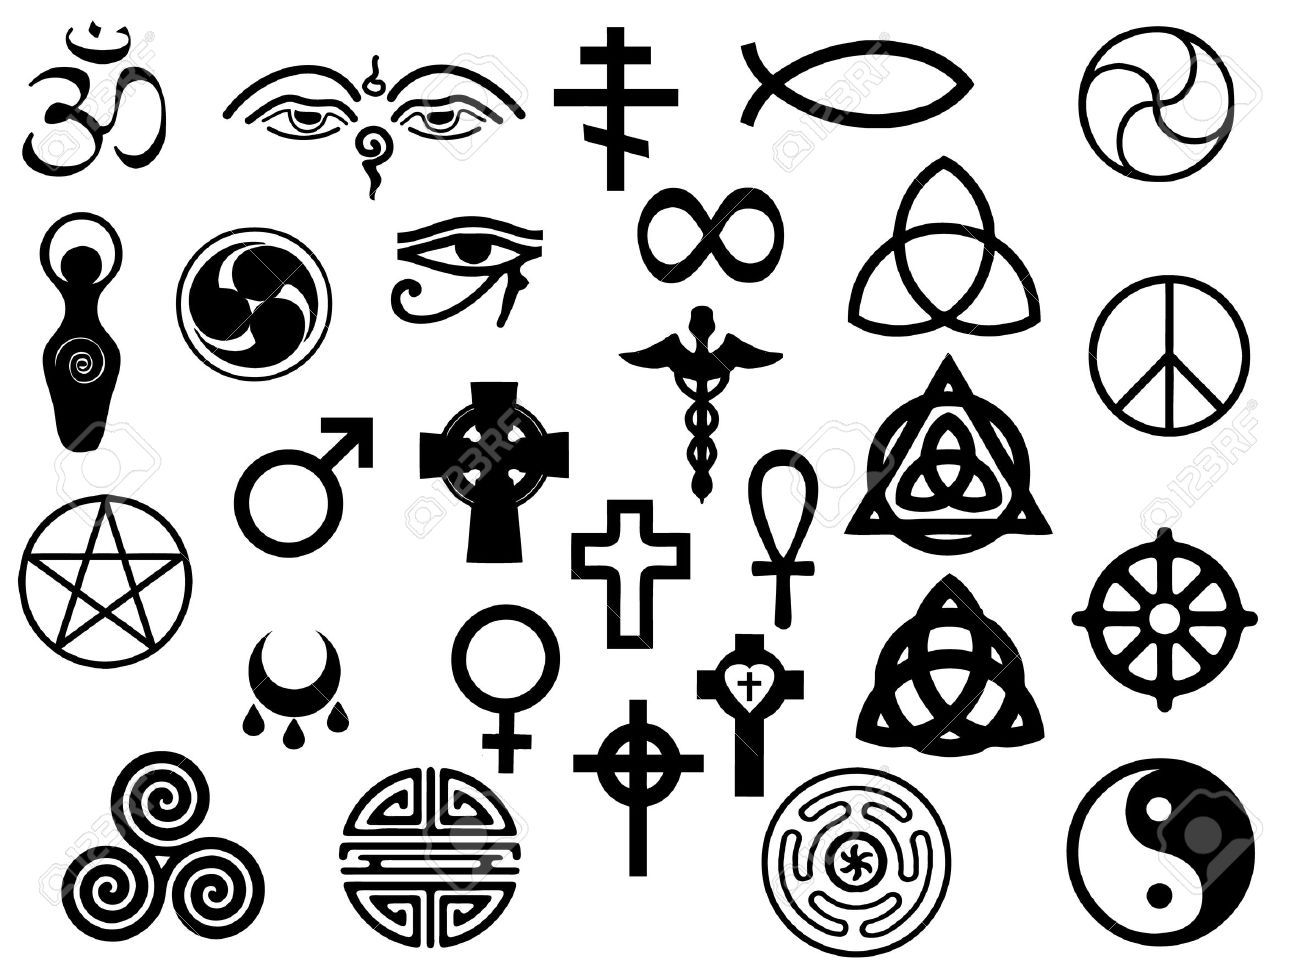 Vectors Of Sacred And Healing Symbols For Use In Artwork And ...